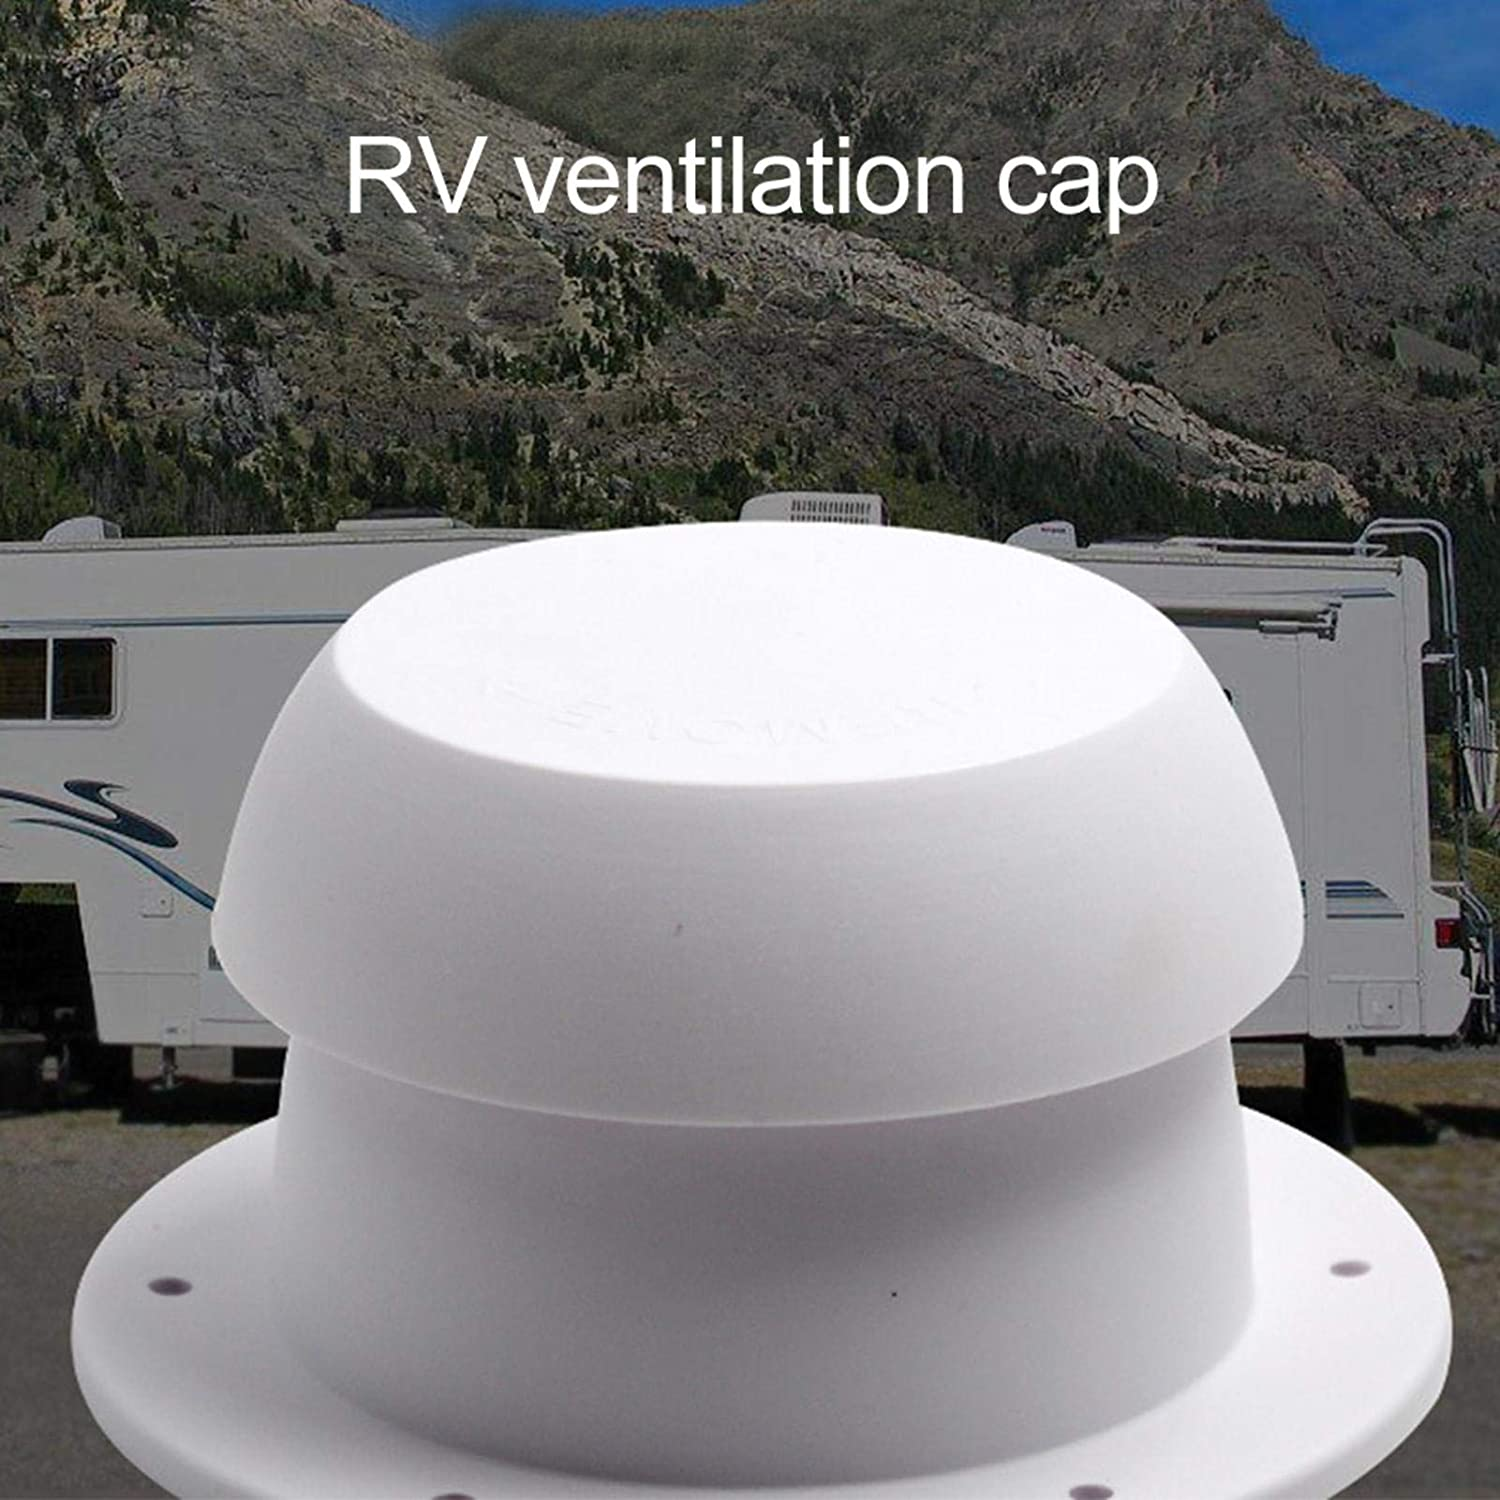 sdfsa Mushroom Head Shape Ventilation Cap for RV Accessories Top Mounted Waterproof Universal Replacement for Camper Trailer Motorhome